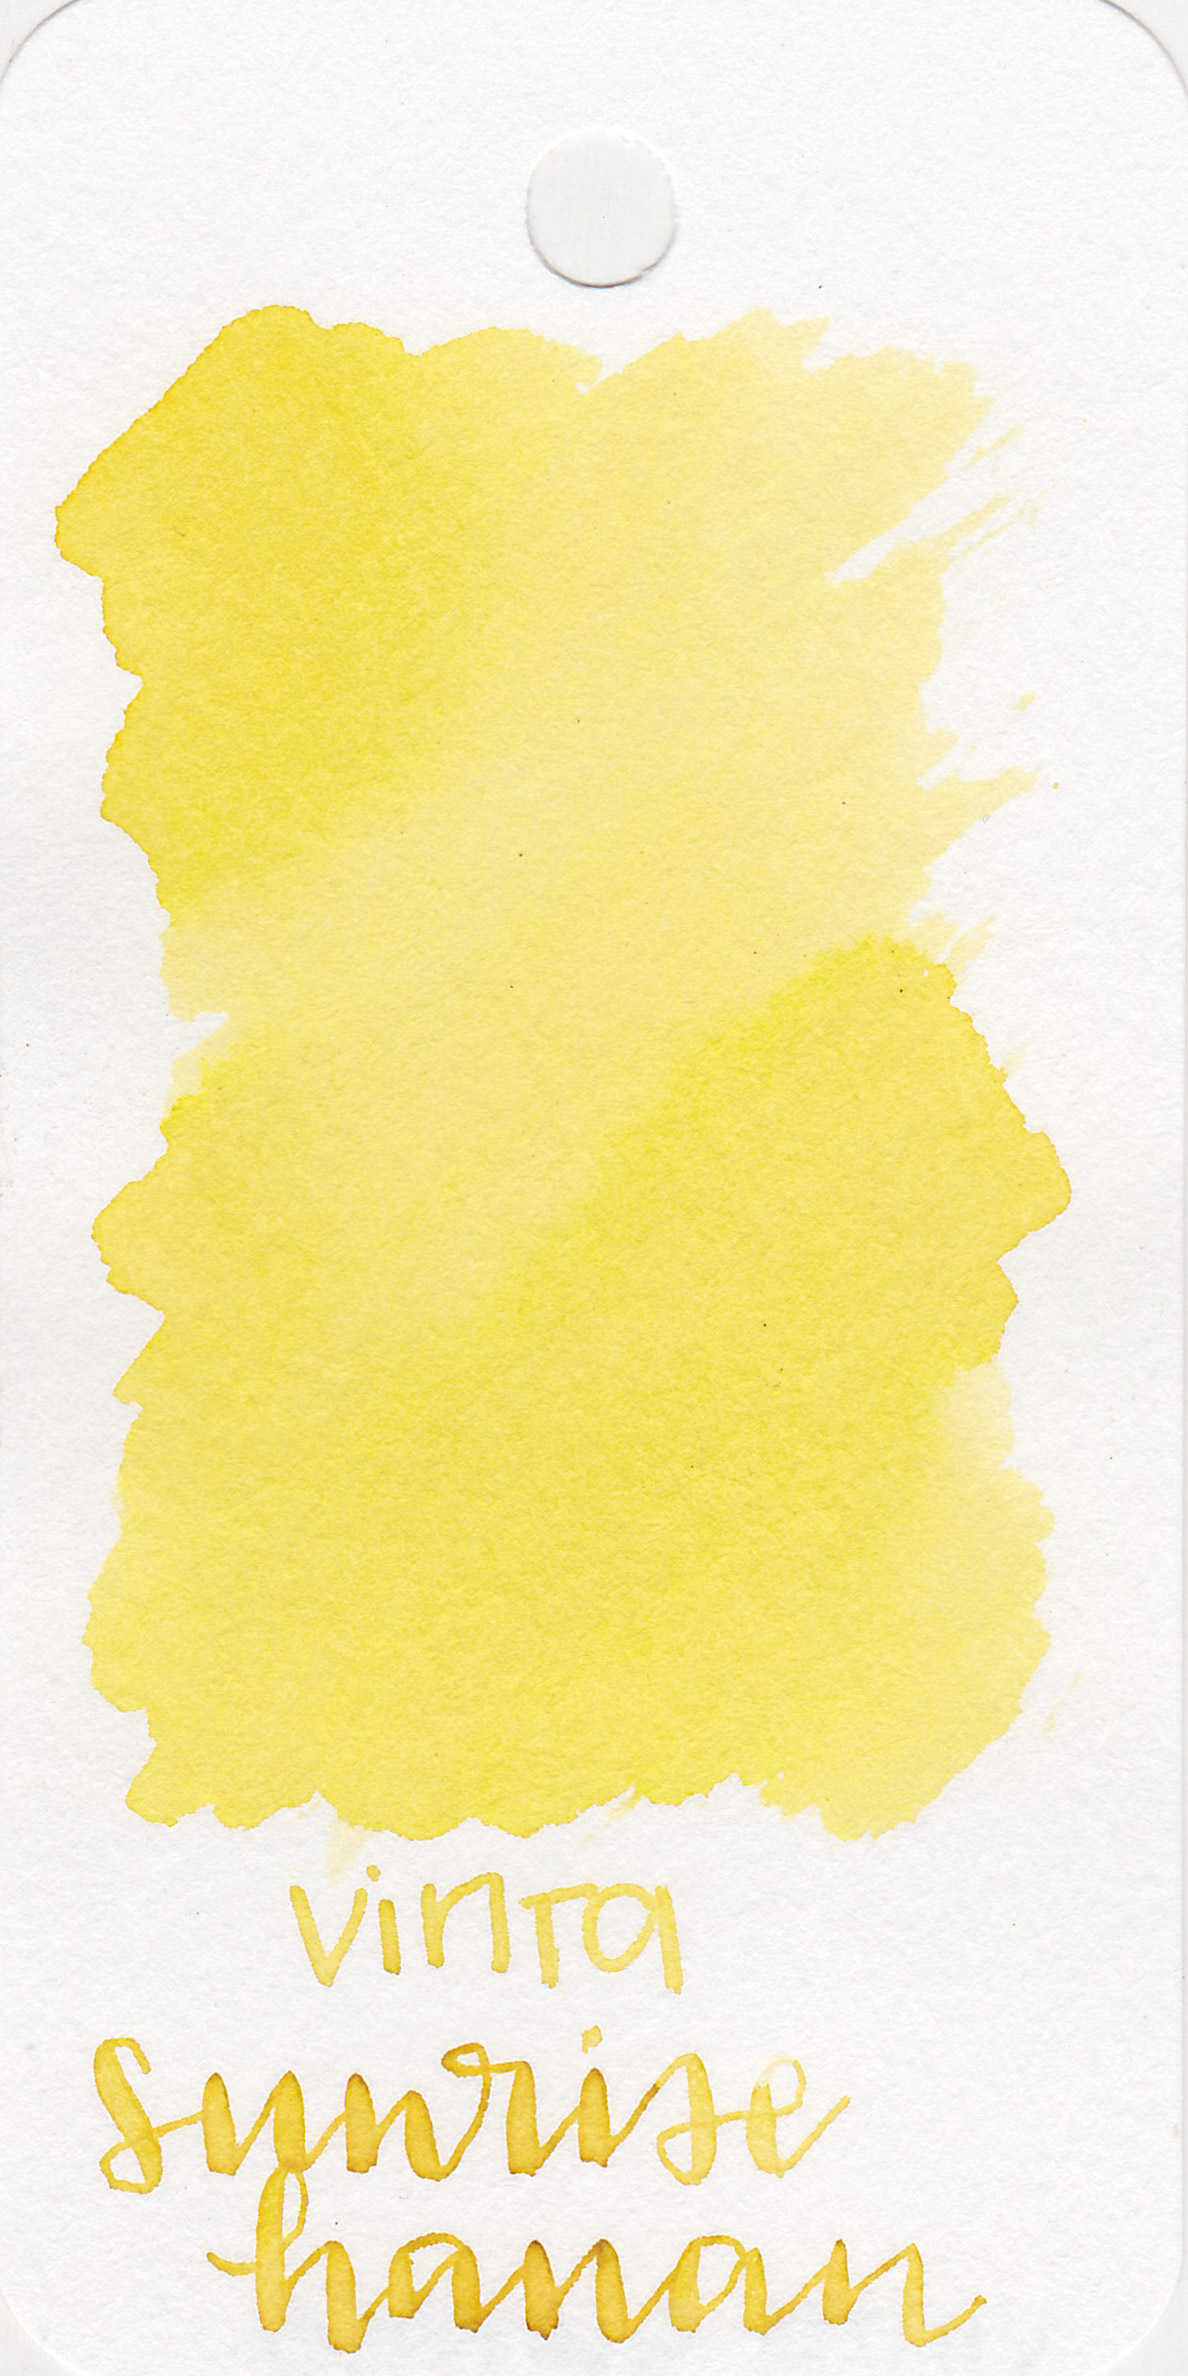 The color: - Sunrise Hanan is a cute pastel yellow, the first true pastel yellow I have found. This ink is very pale, and actually looks a bit green when wet.